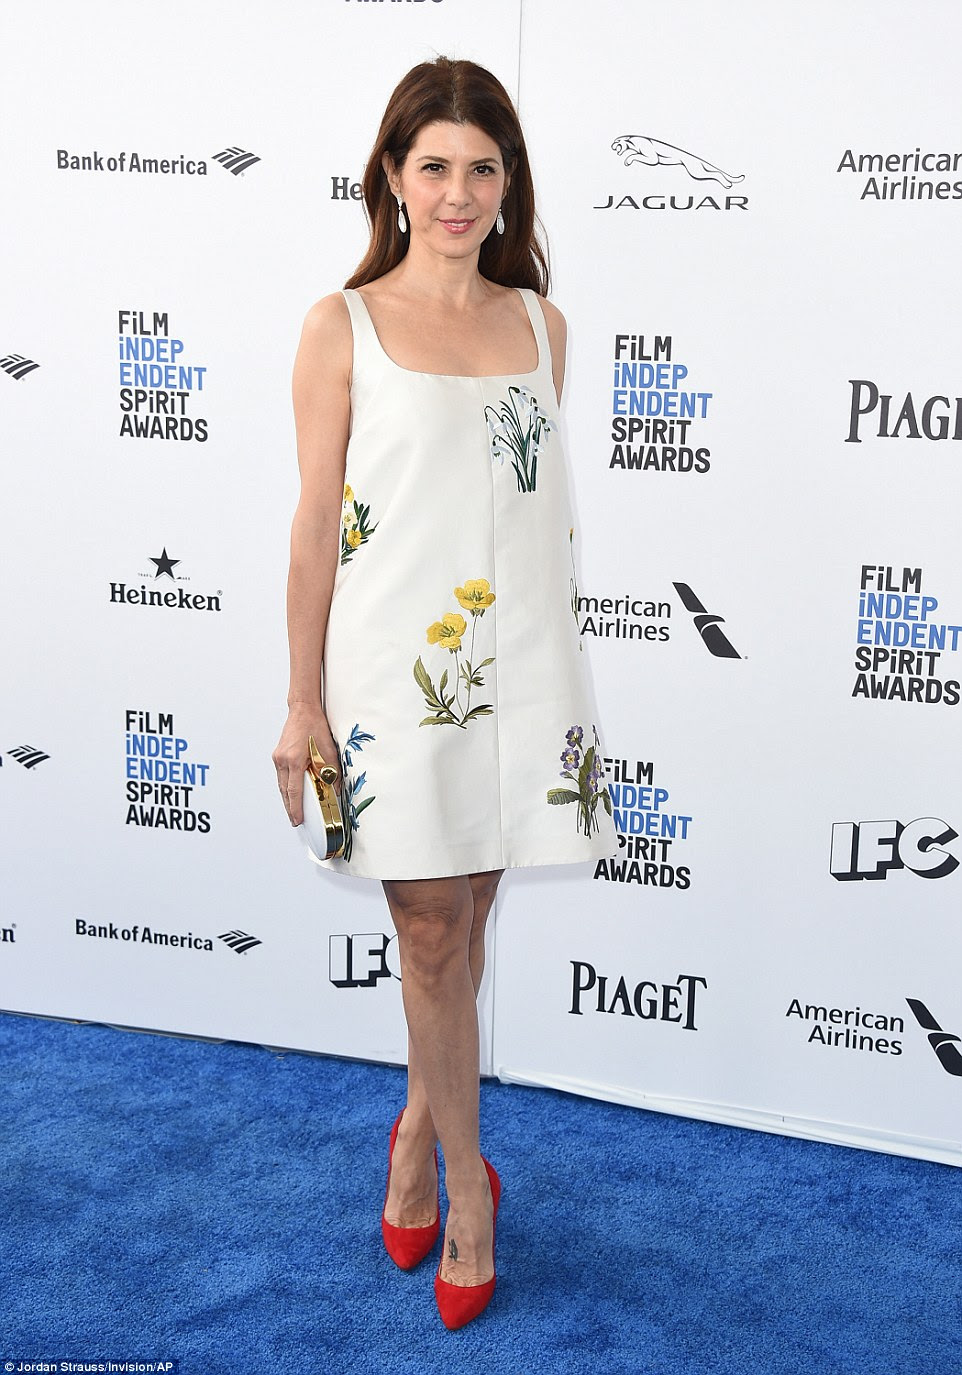 Floral fun: Marisa Tomei looked ready for an Easter brunch in her mini dress with sketches of wild flowers on it and red pumps